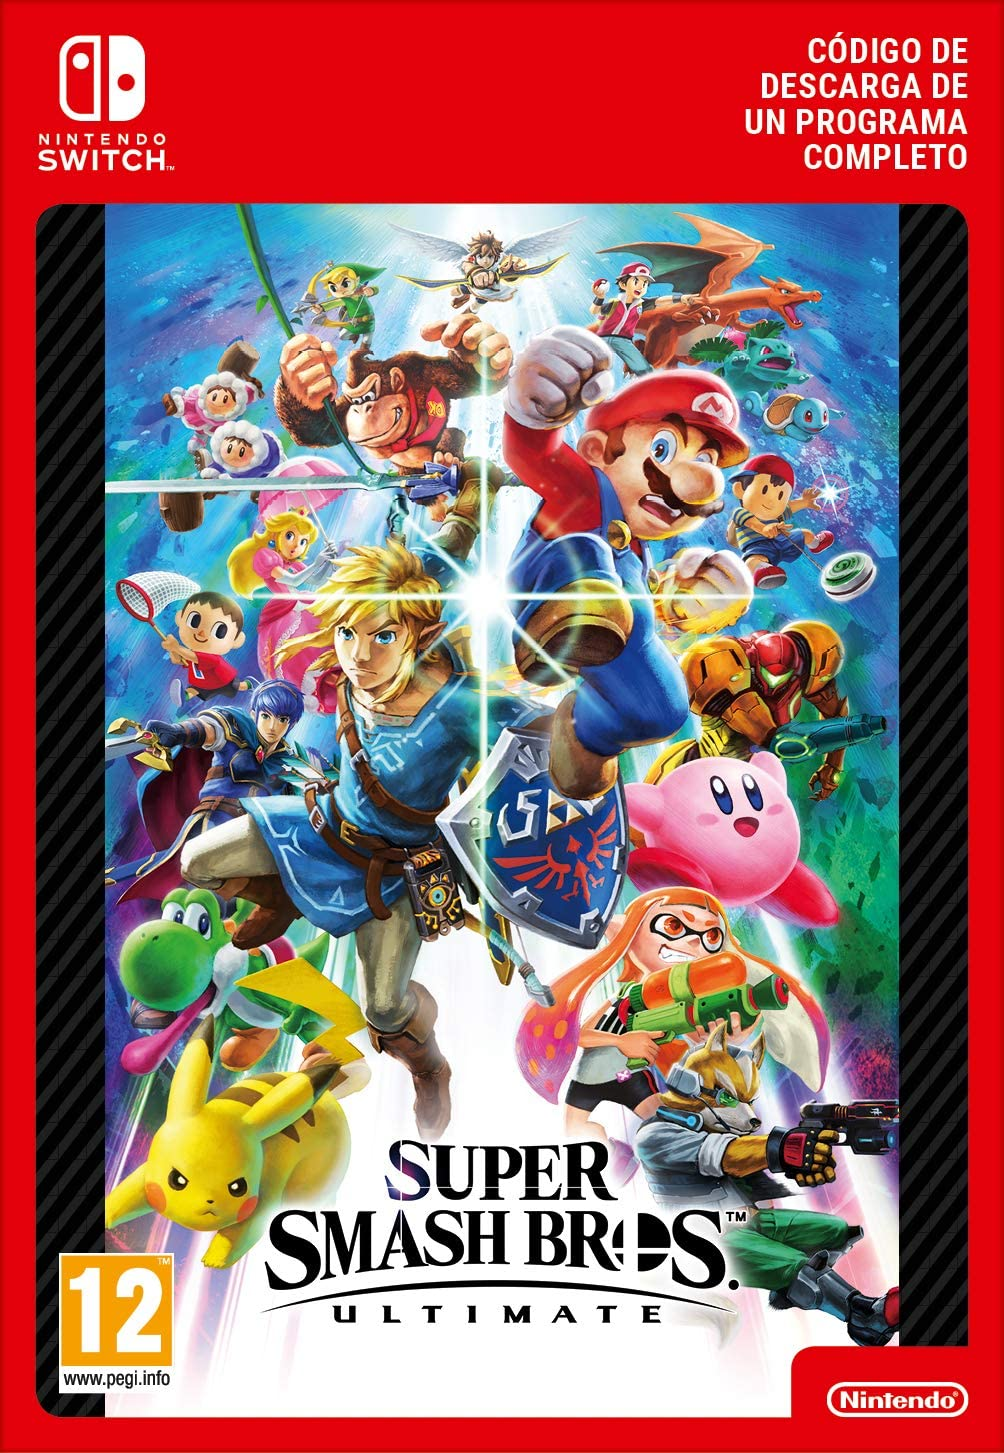 Super Smash Bros. Ultimate | Nintendo Switch - Código de descarga: Amazon.es: Videojuegos